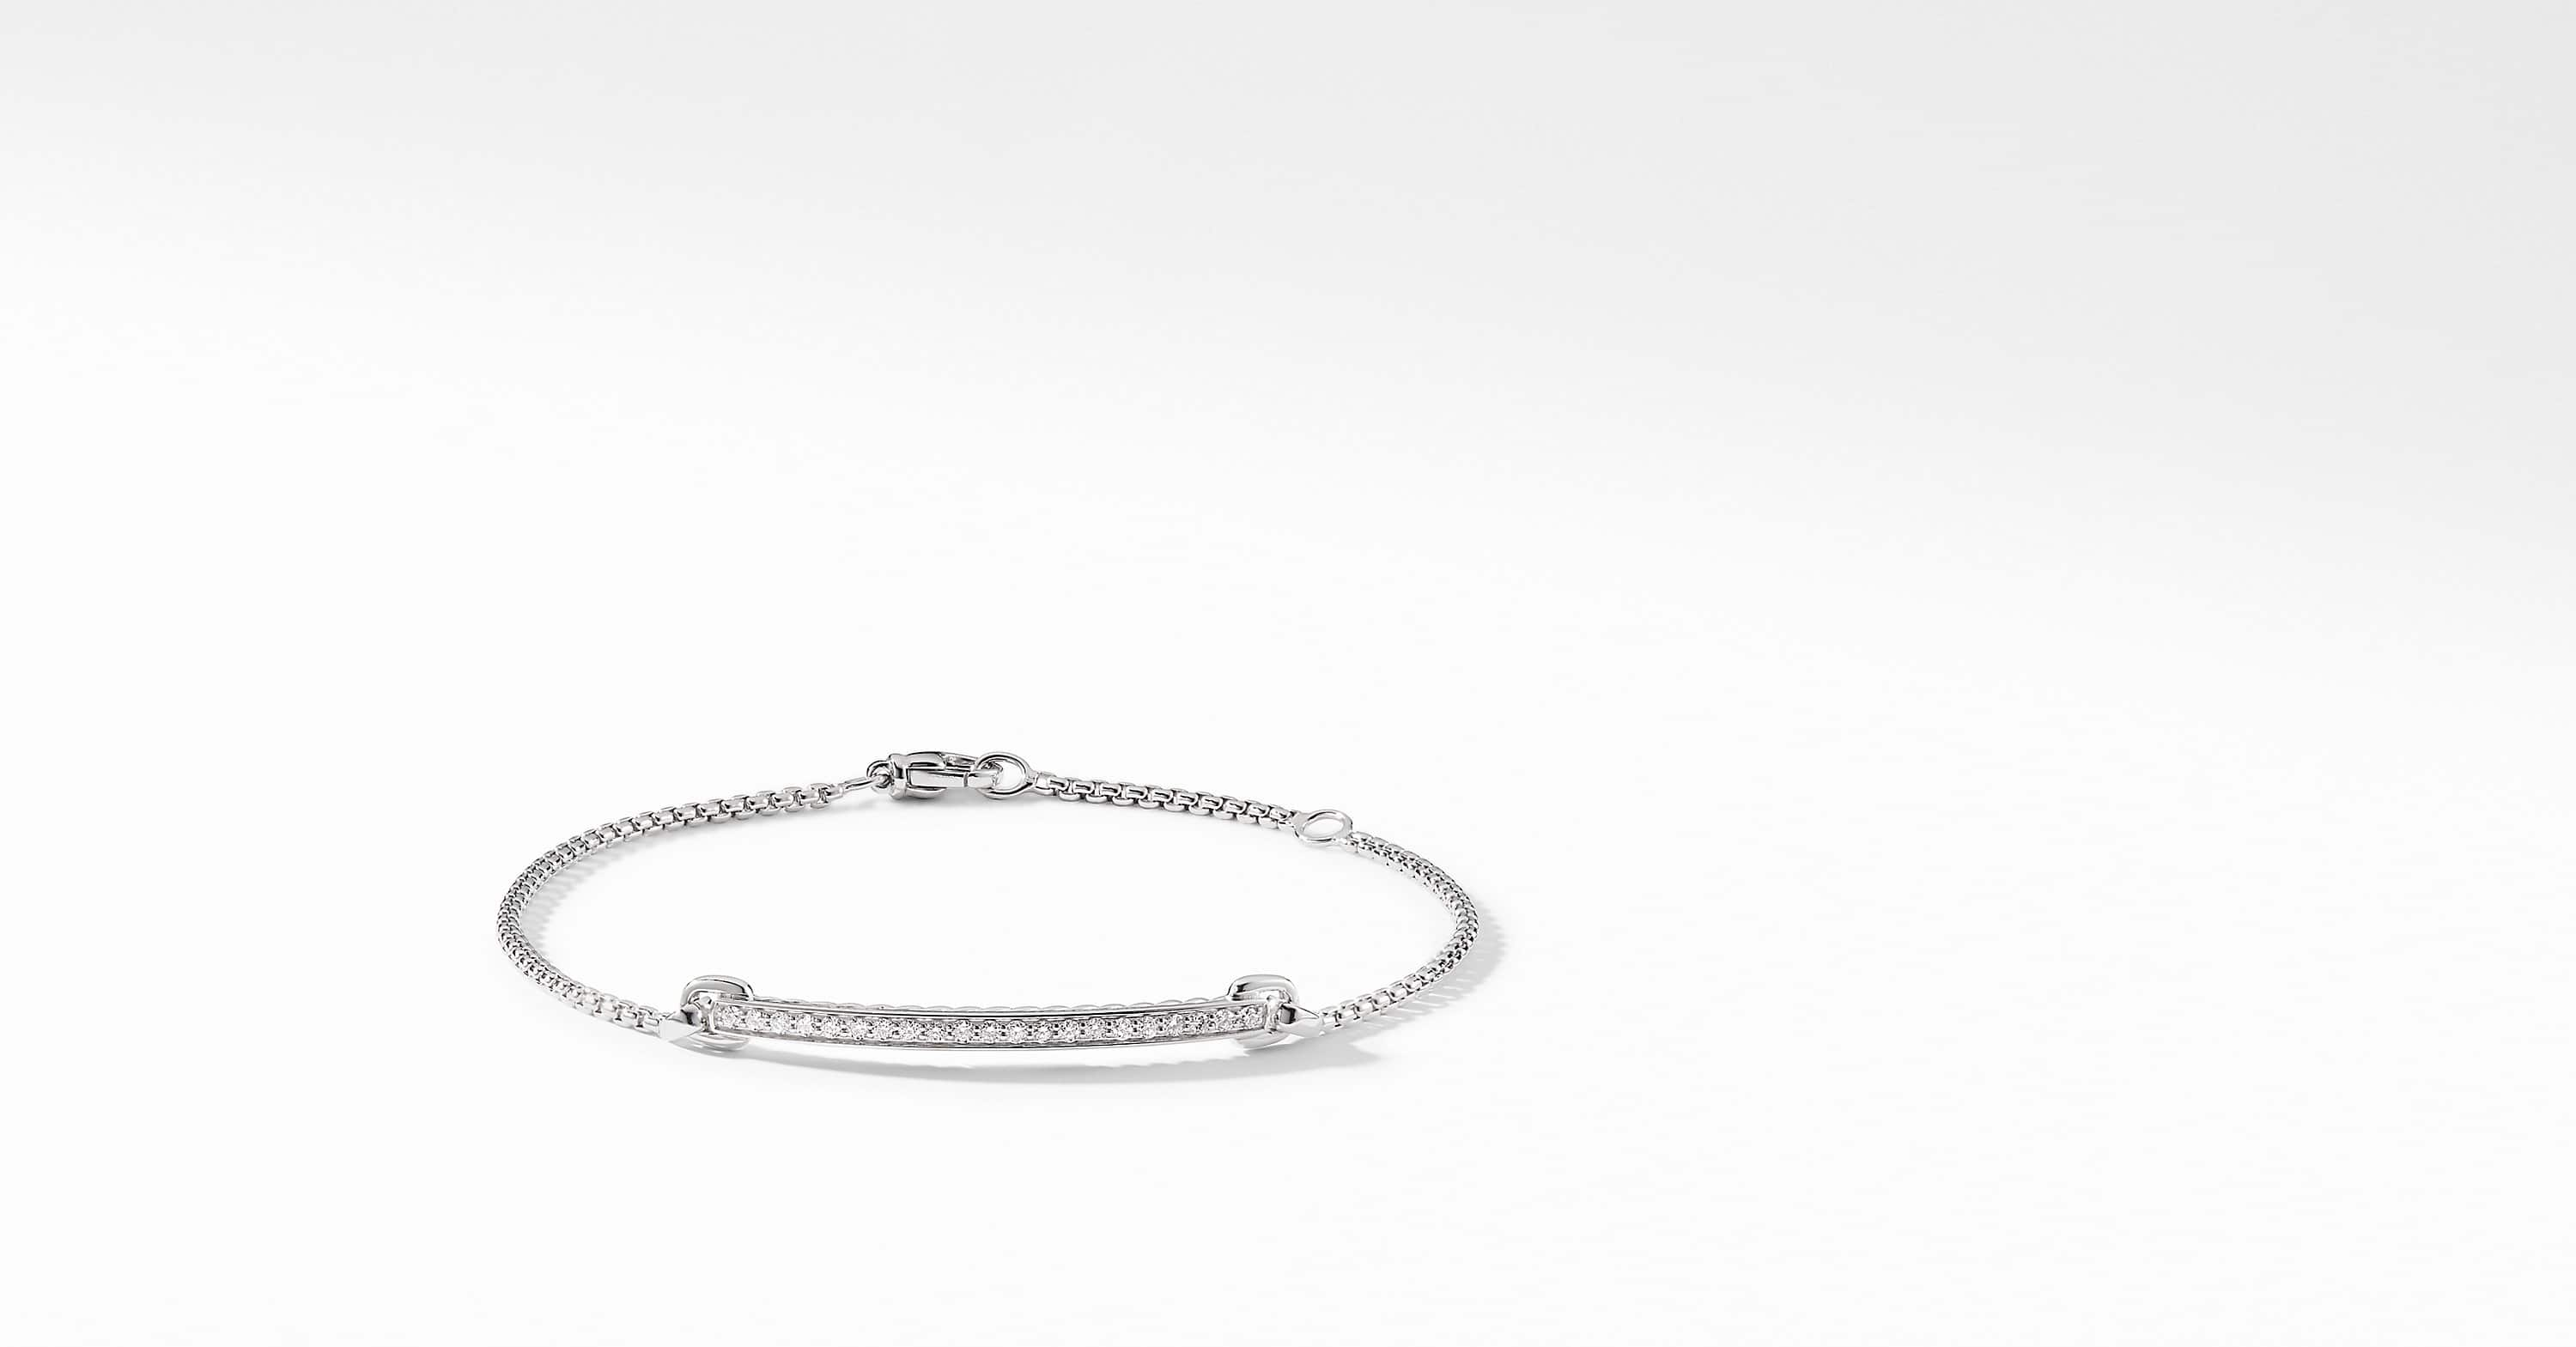 Petite Pavé Station Chain Bracelet with Diamonds in 18K White Gold